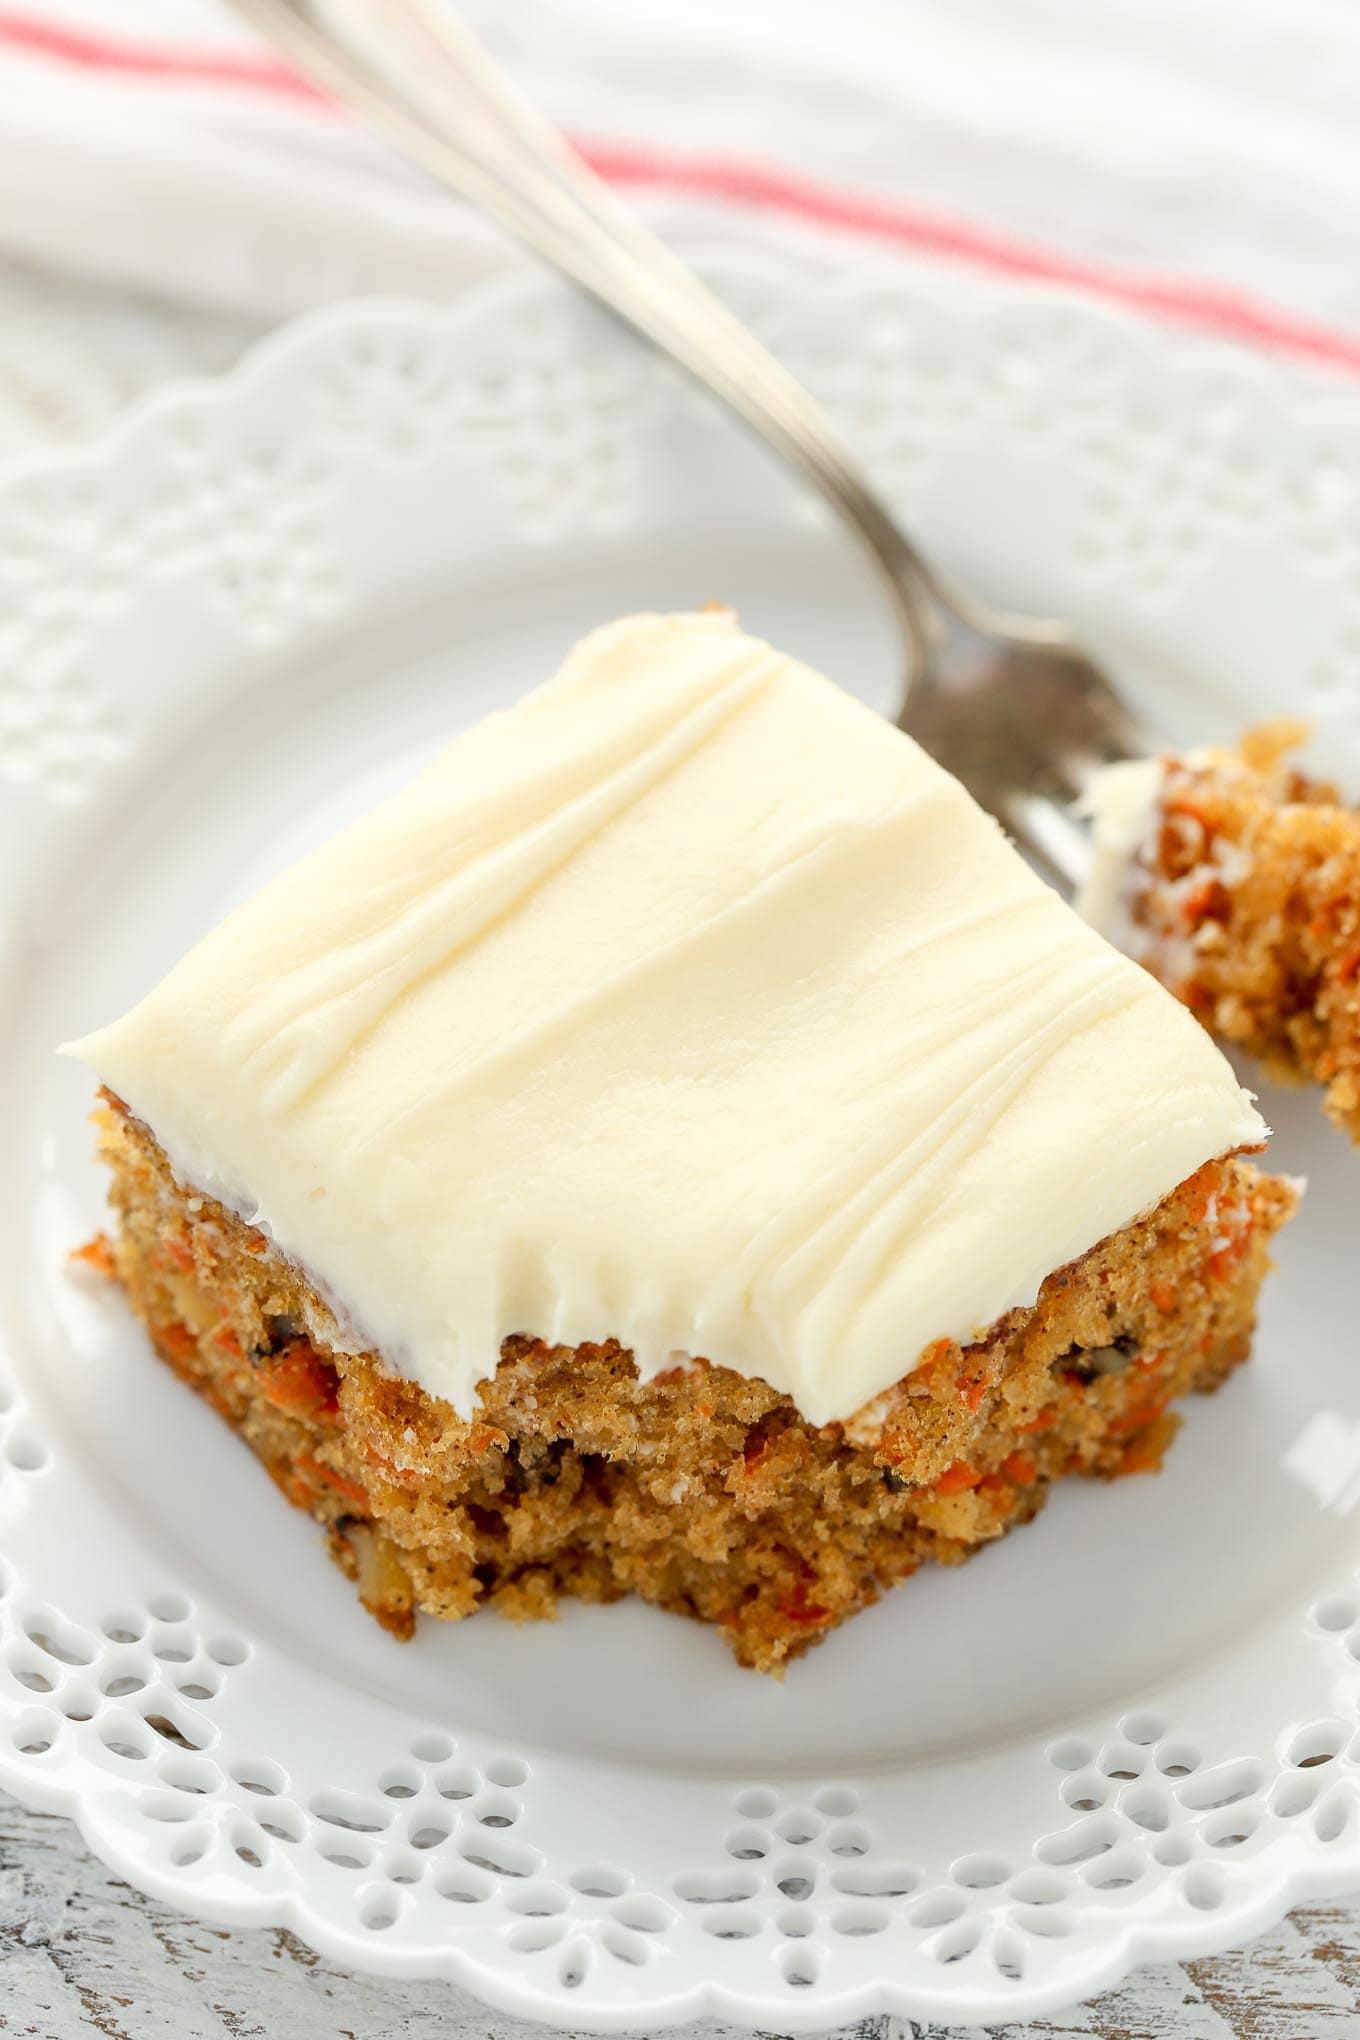 A moist carrot cake filled with crushed pineapple and chopped walnuts and topped with an easy cream cheese frosting. This Pineapple Carrot Cake is perfect for Easter or carrot cake lovers!